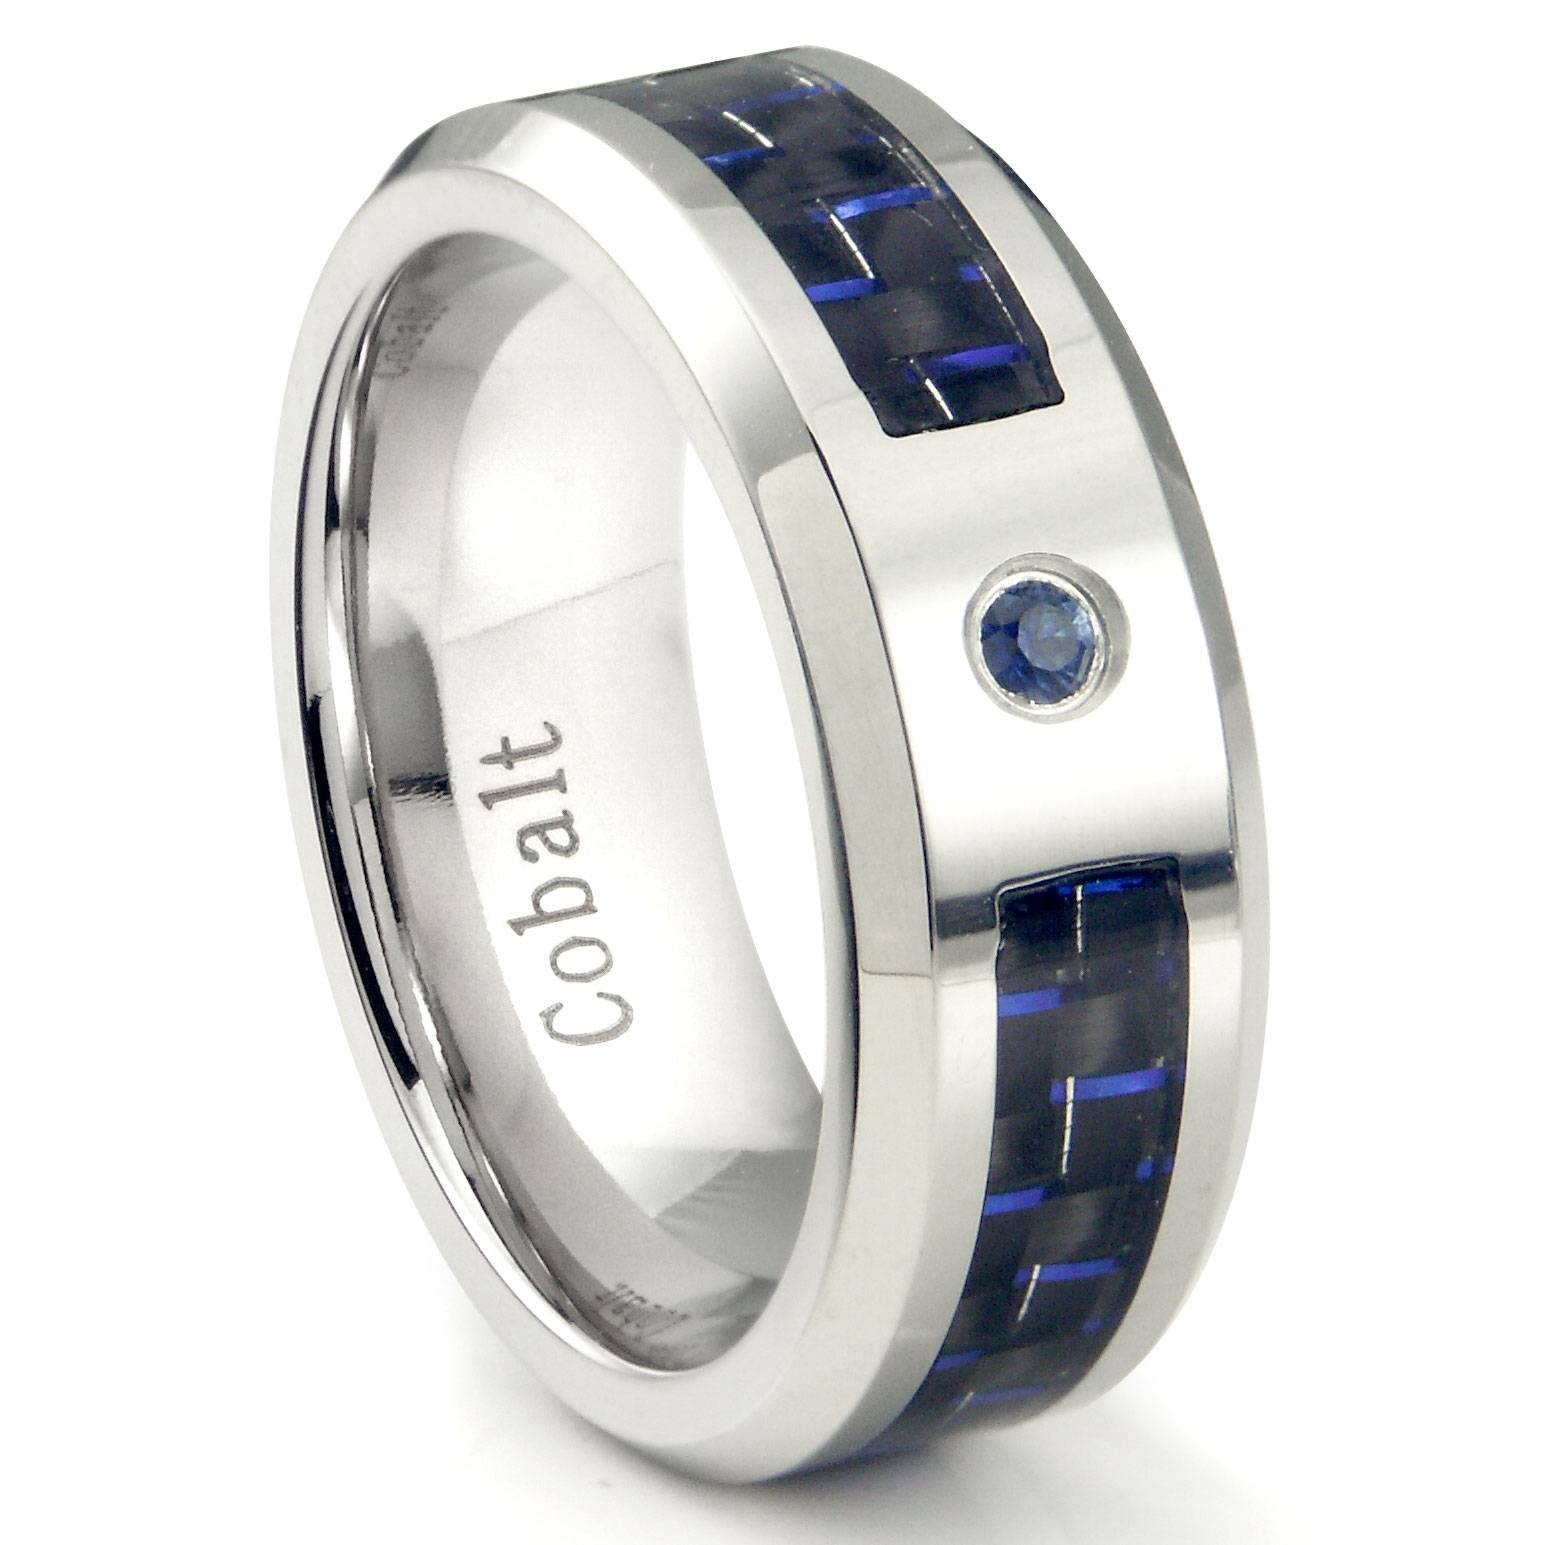 Cobalt Chrome 8Mm Blue Sapphire & Blue Carbon Fiber Inlay Wedding Regarding Men's Black And Blue Wedding Bands (View 5 of 15)